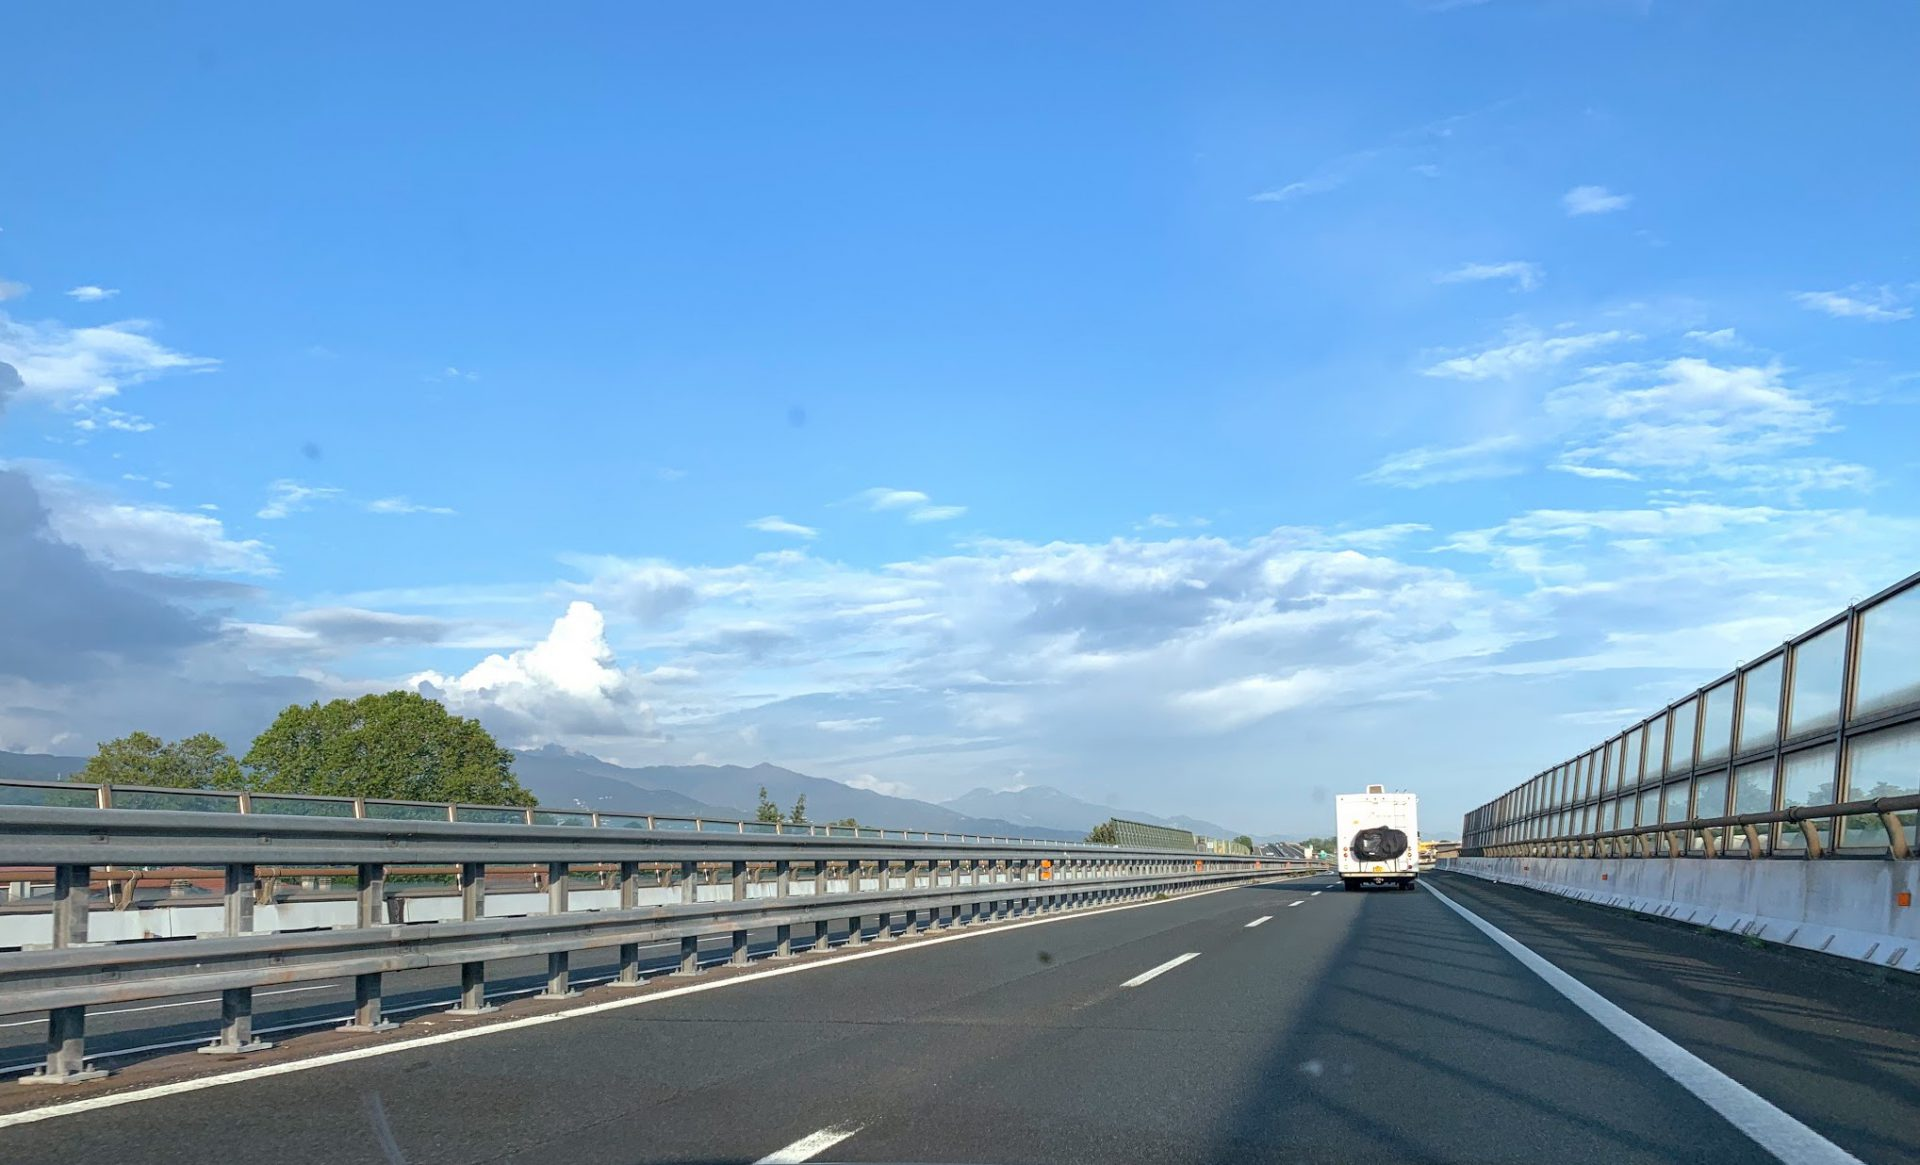 Our RV driving on the Autostrada in Italy